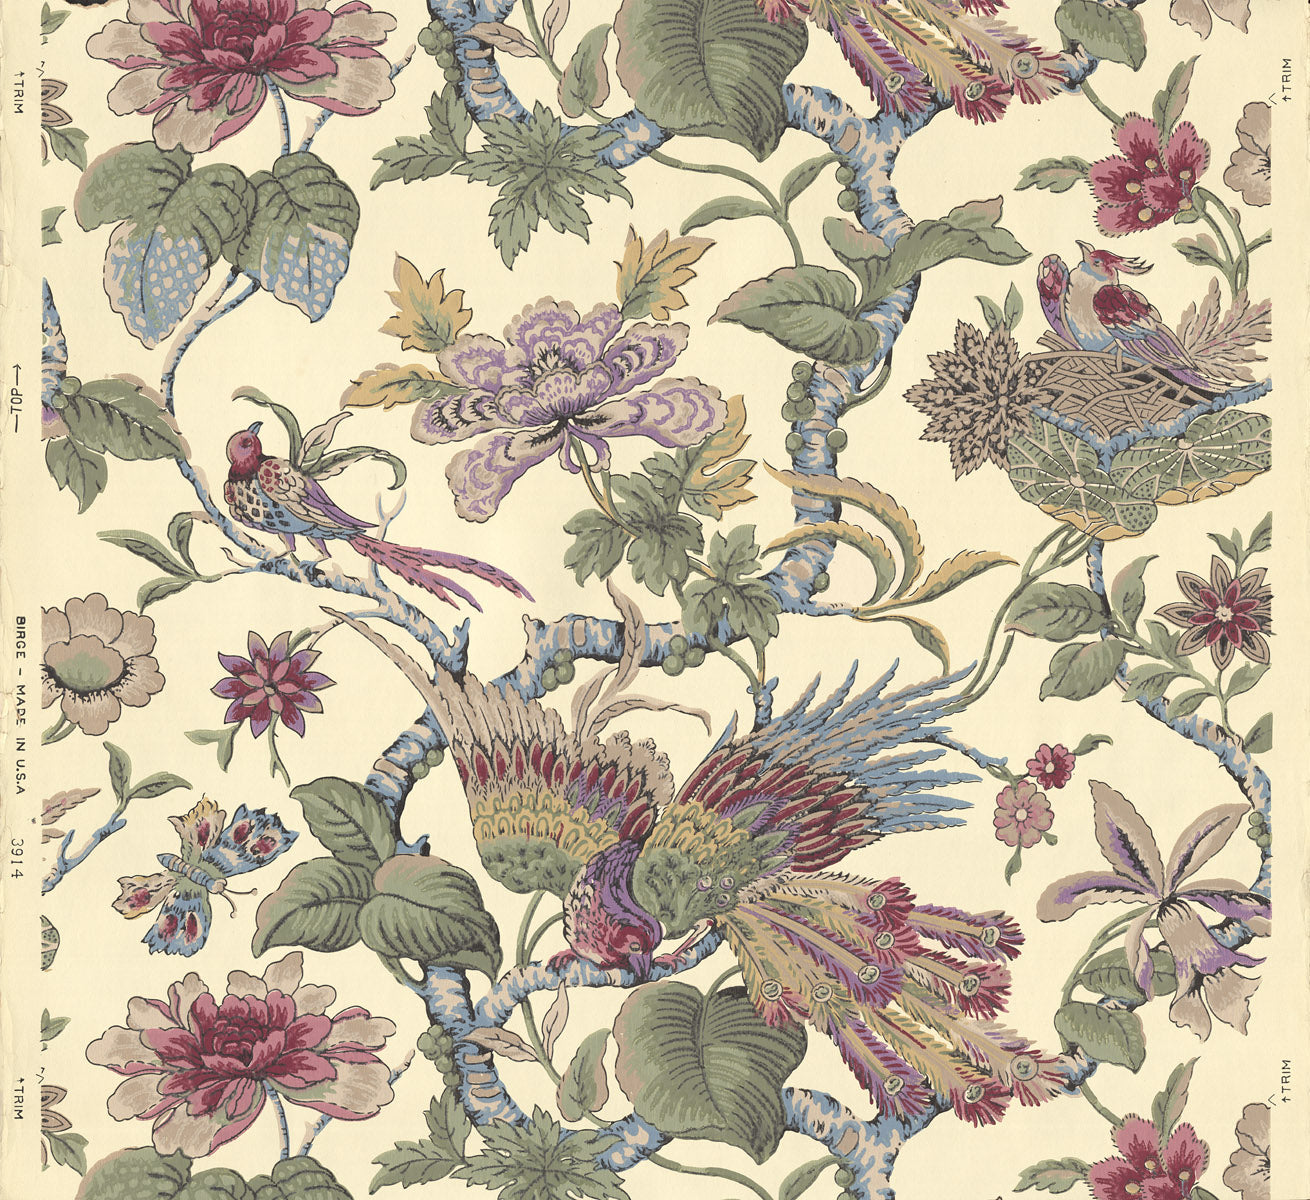 Floral Vine with Birds, Nest, Butterflies - Antique Wallpaper Remnant